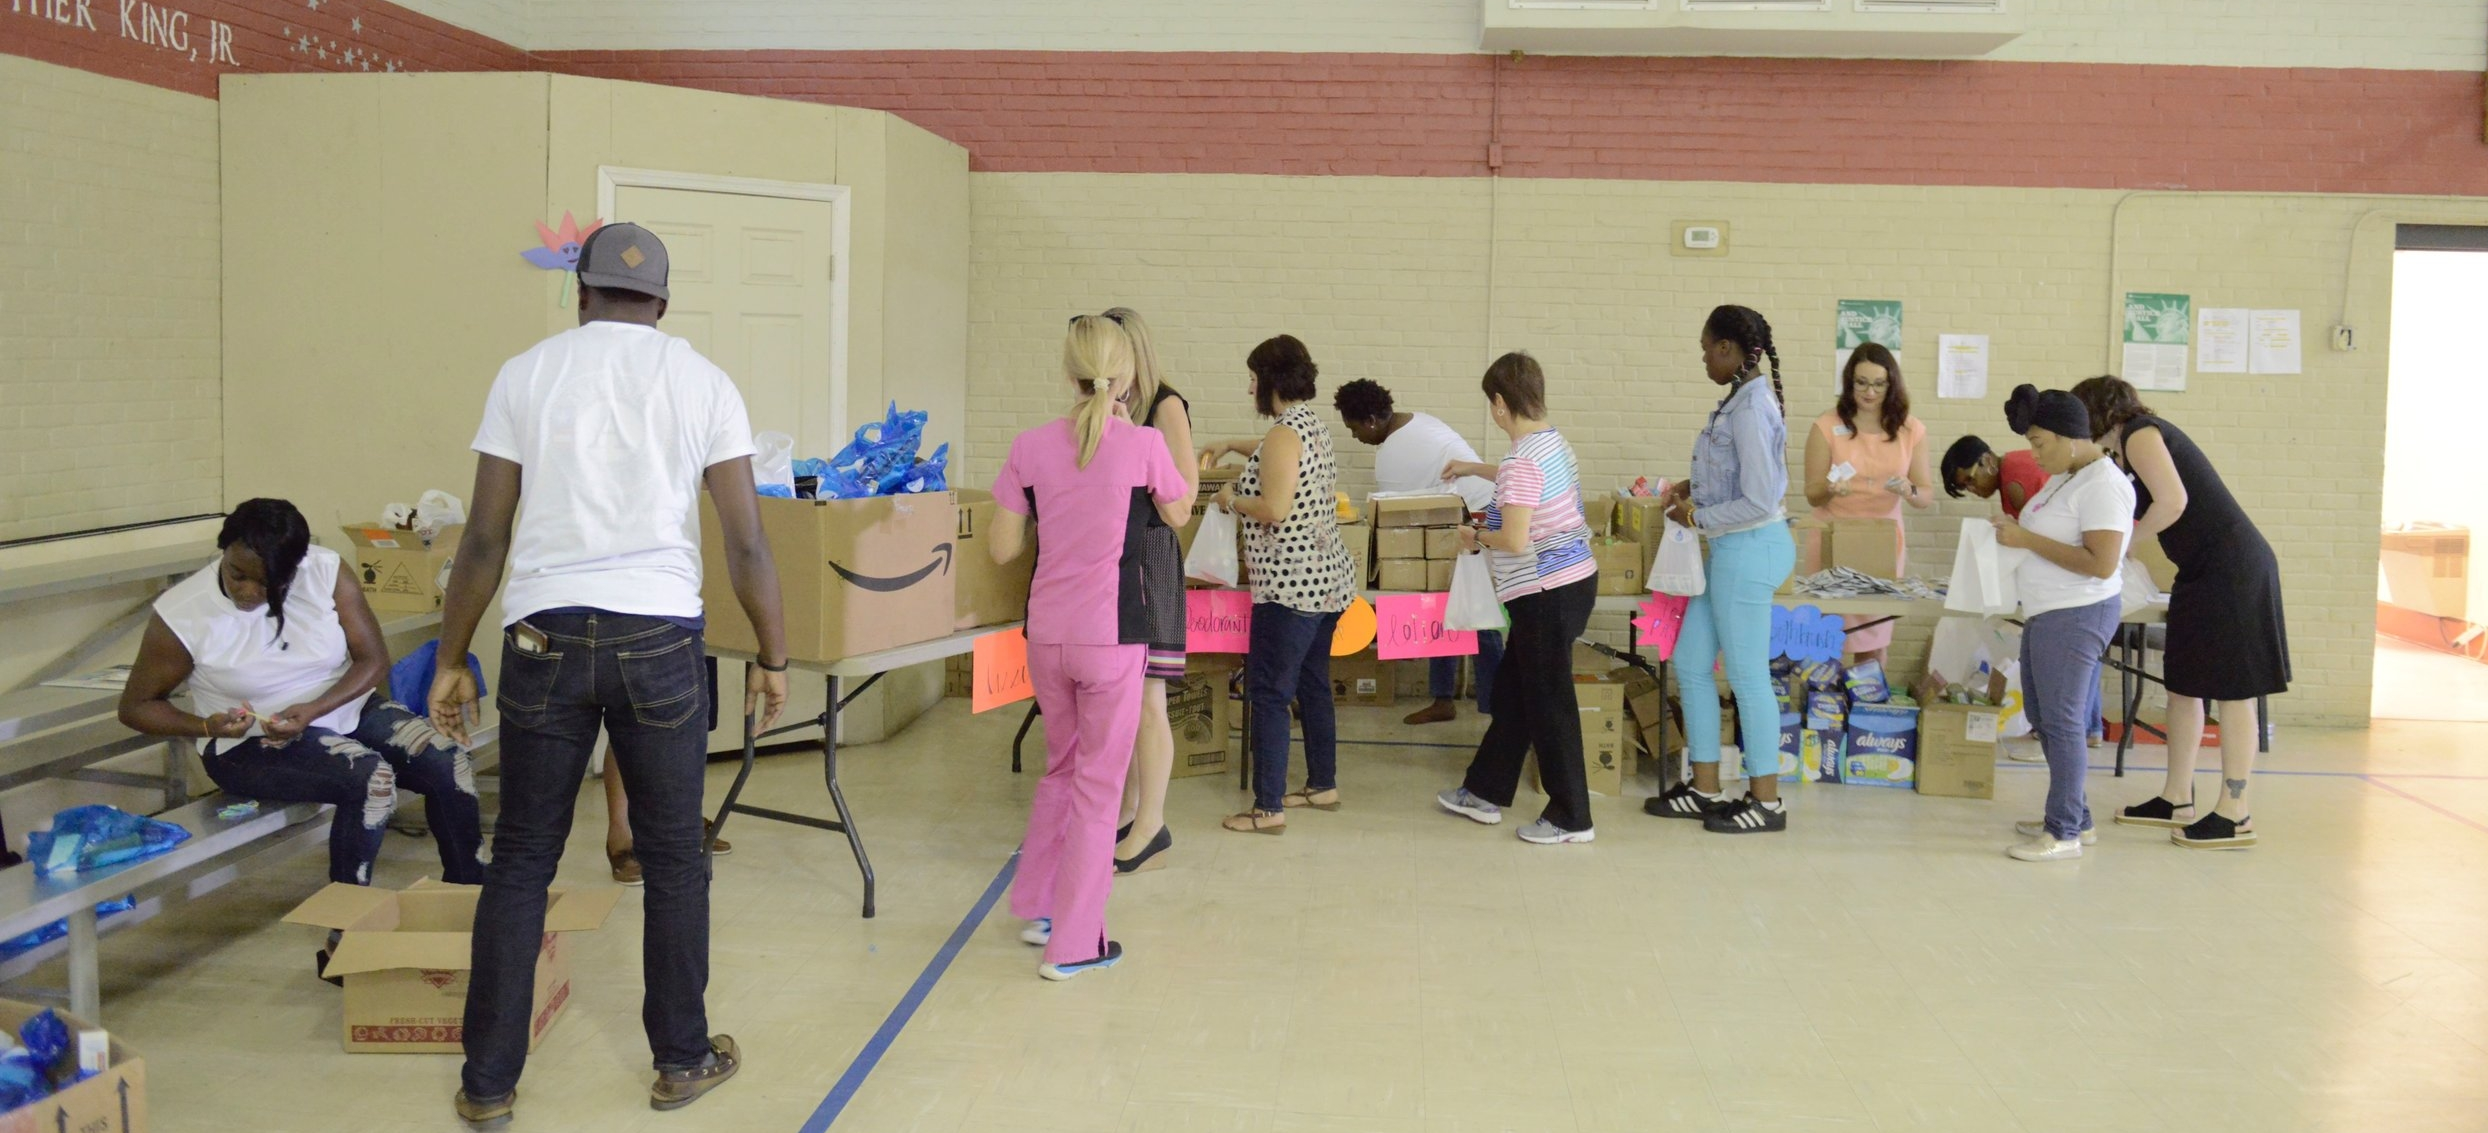 Fresh Start KitPacking Party - On August 8th 2018 we packed approximately 338 Fresh Start Kits. These kits have personal care items for young ladies and gentlemen in middle and high school. This was not your normal packing party! I believe that serving others can be fun!!! We had a DJ, lunch and goodies to keep our volunteers energized.On August 23rd 2018 we started distributing Fresh Start Kits by delivering them to schools, community centers and other local organizations. We are off to a great start but we still need more support to reach our goal of 500 kits.